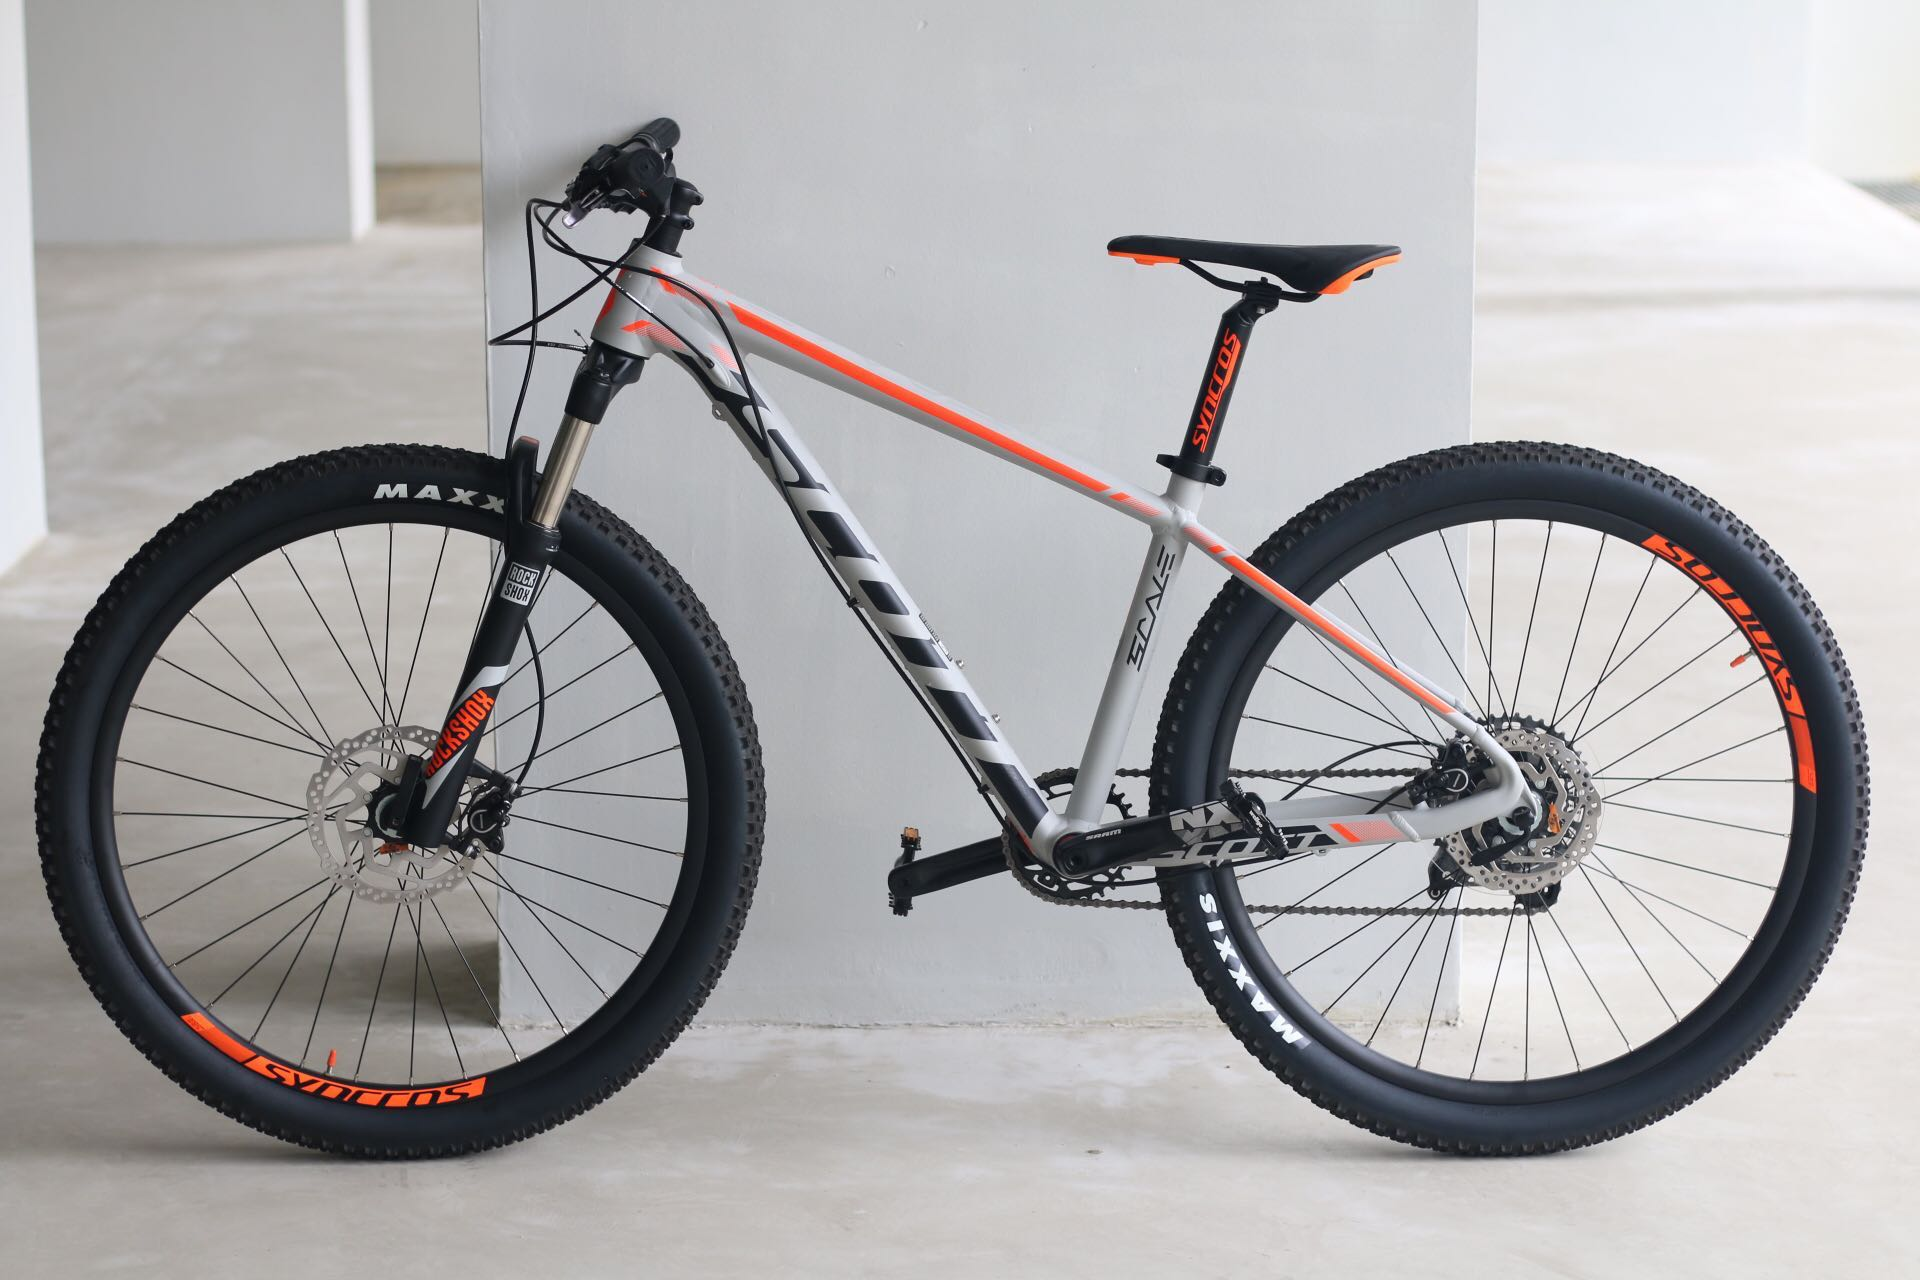 3397b0fa4cf Scott Scale 765, Bicycles & PMDs, Bicycles, Mountain Bikes on Carousell